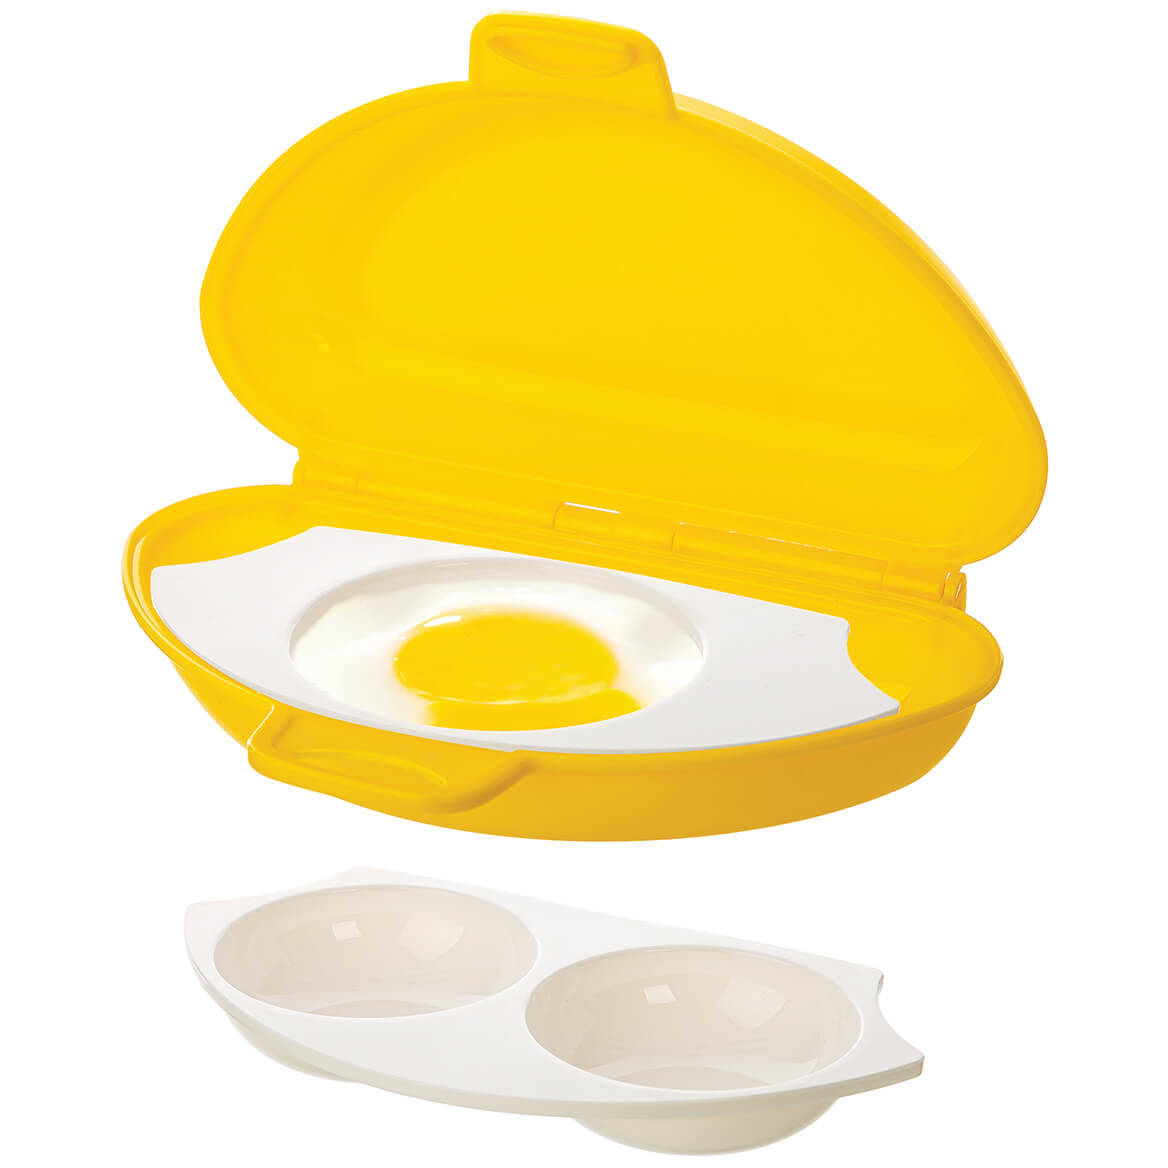 Microwave 4 Way Egg Cooker-370890